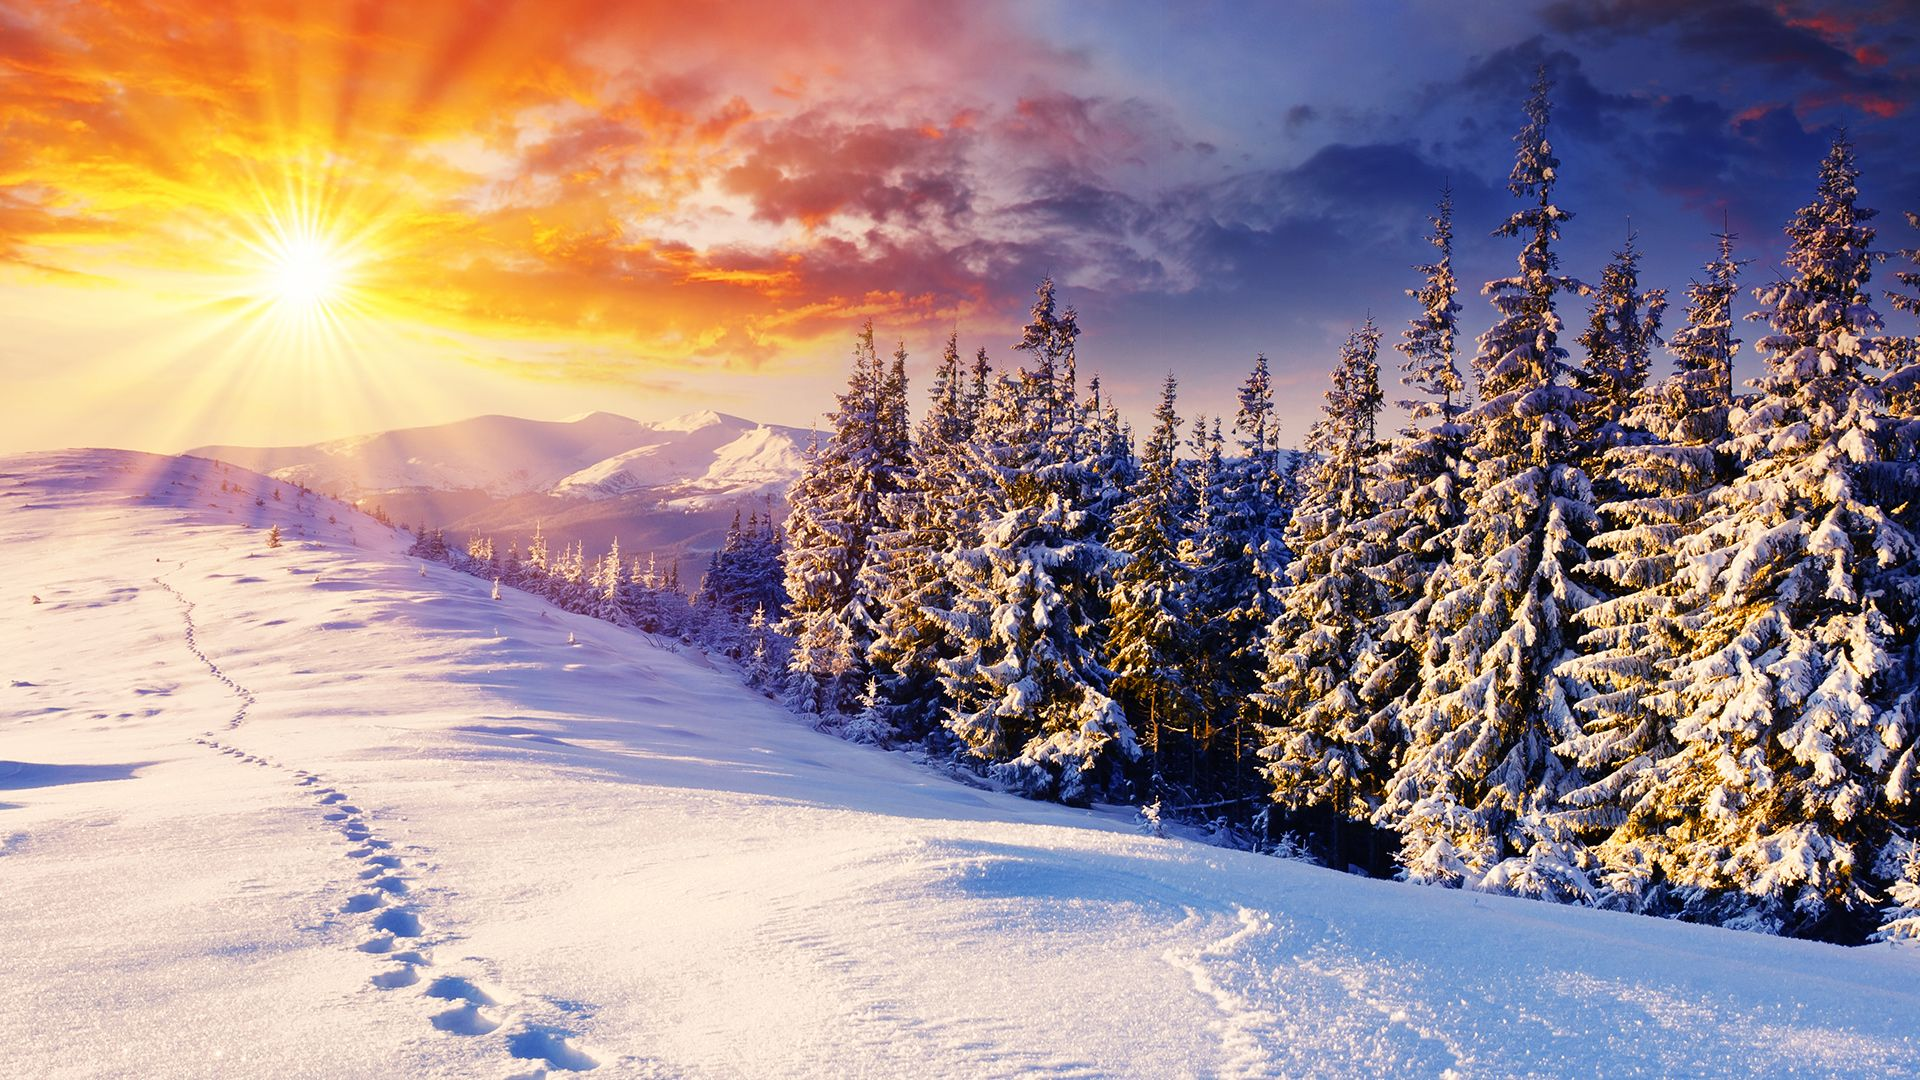 winter wallpapers get free top quality winter wallpapers for your desktop pc background ios